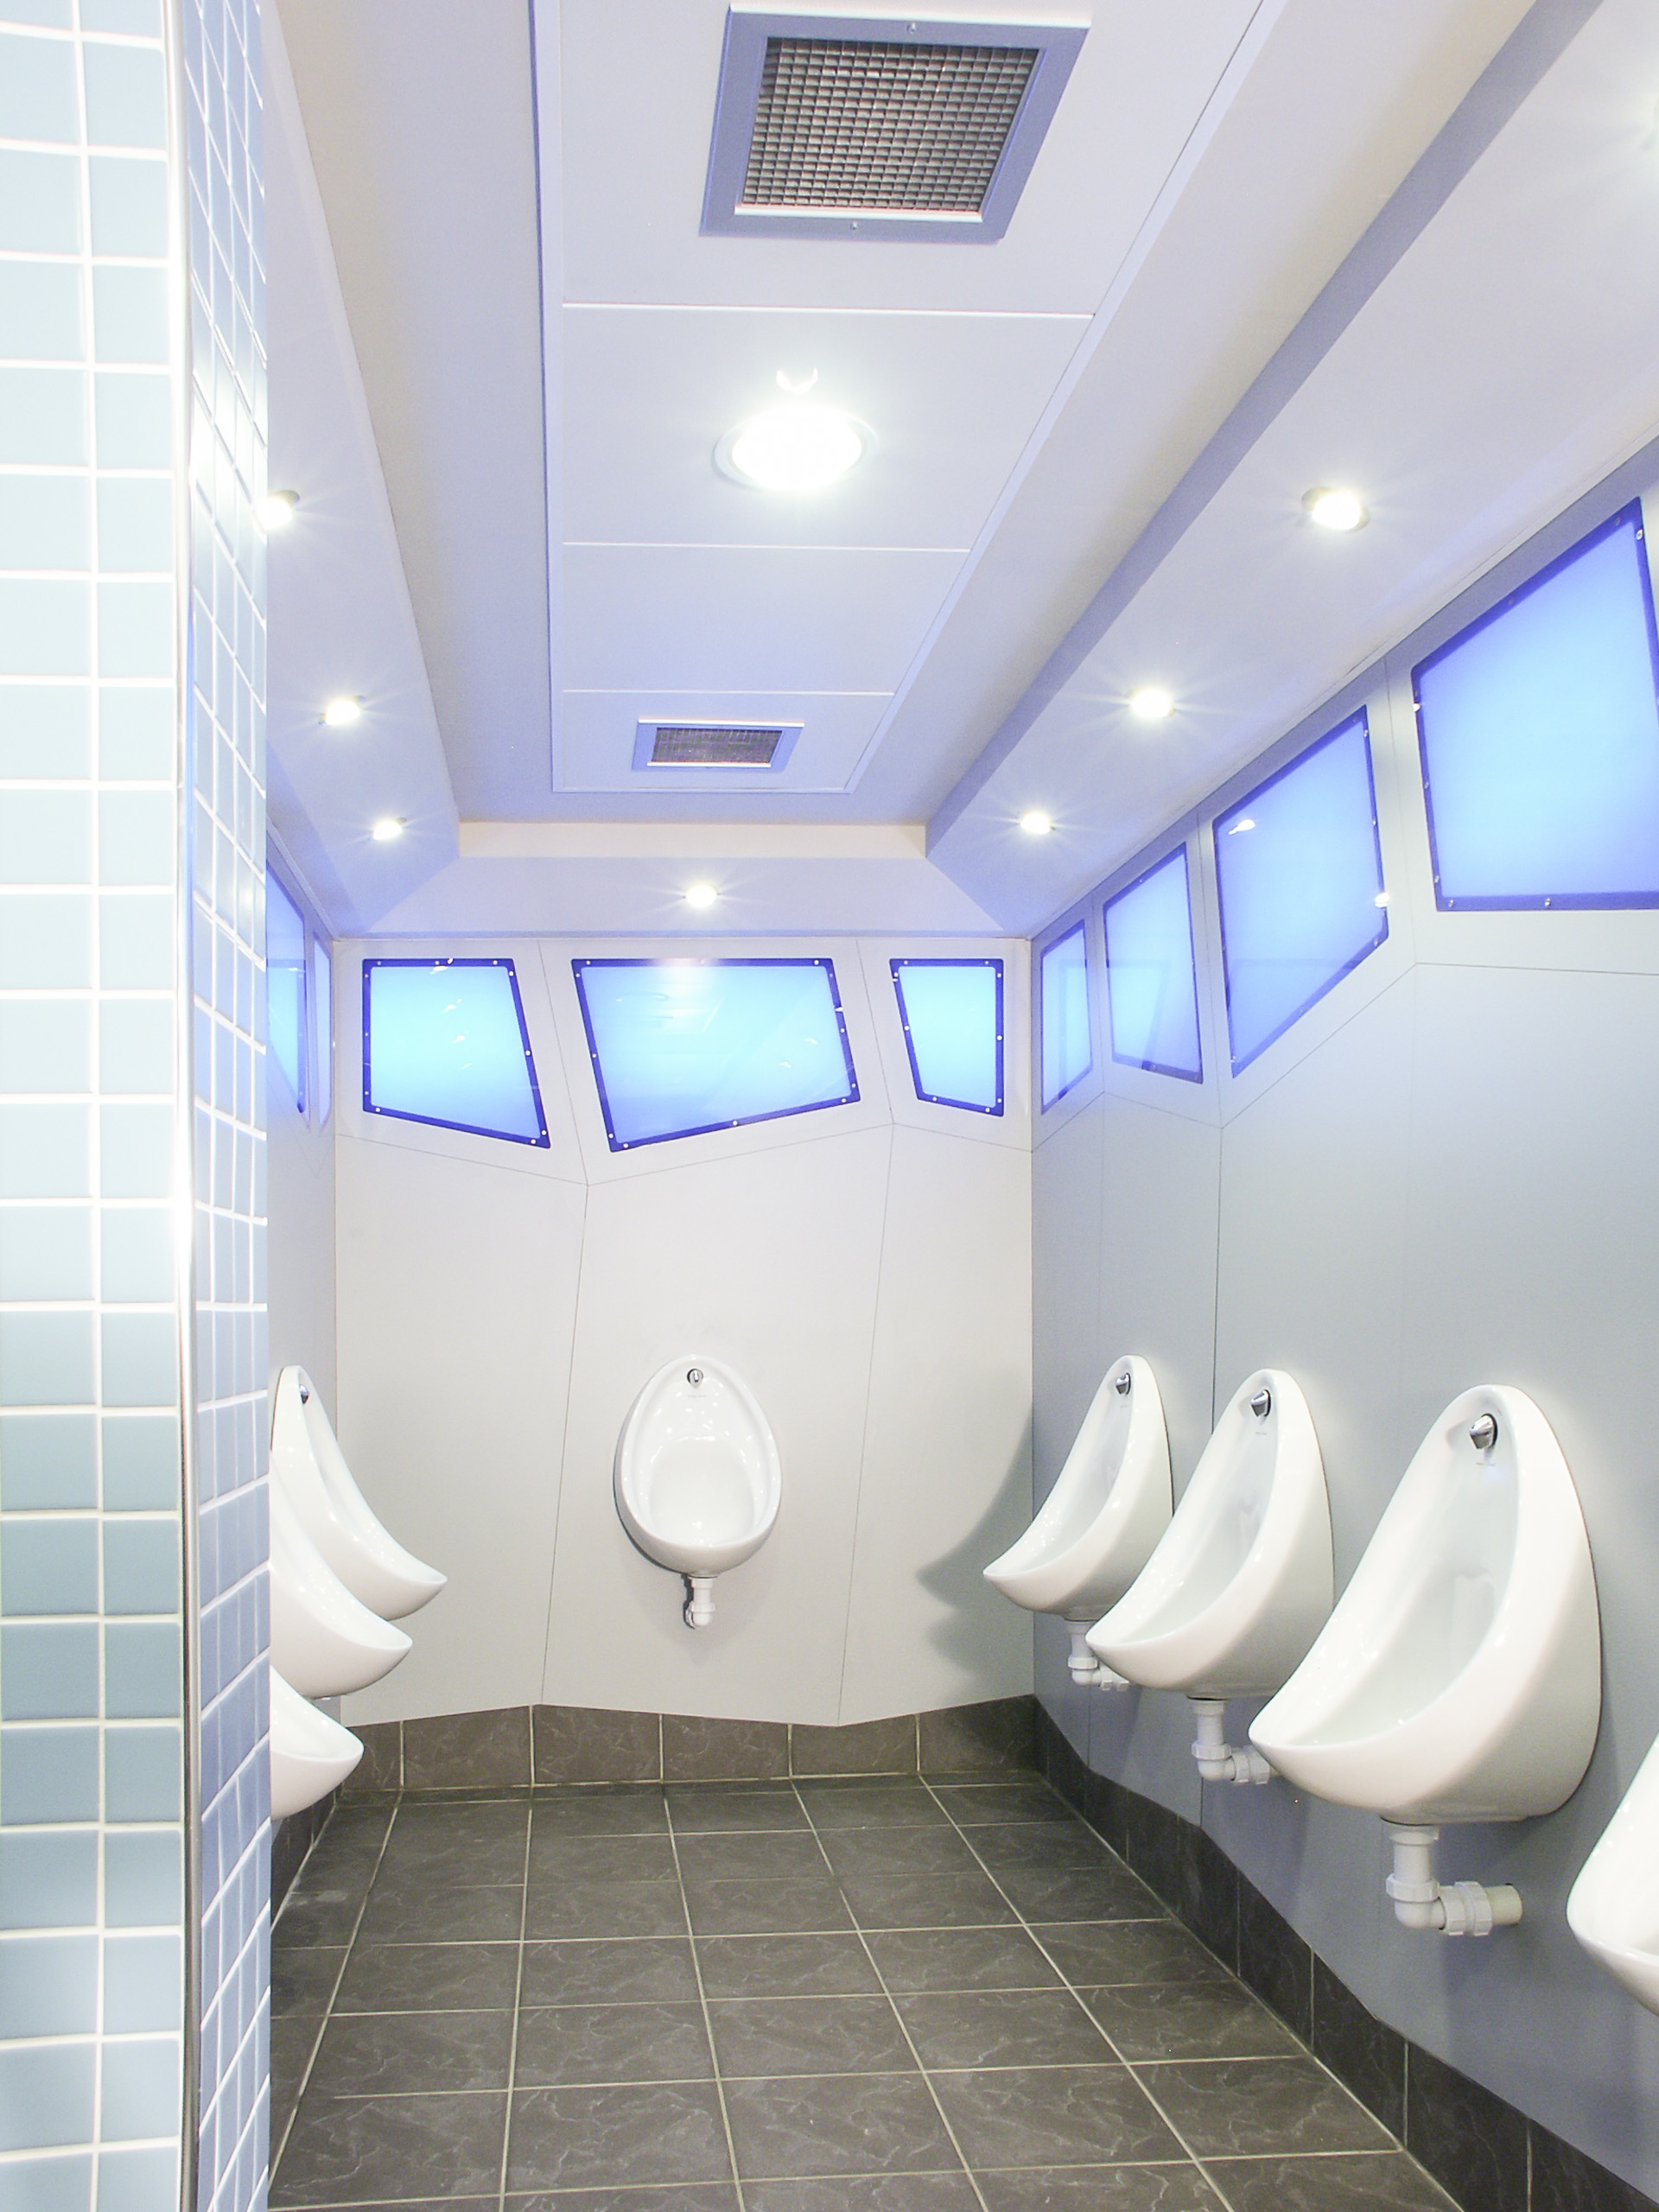 Airport Washroom Specialists - Venesta - Toilet Cubicles and Washrooms